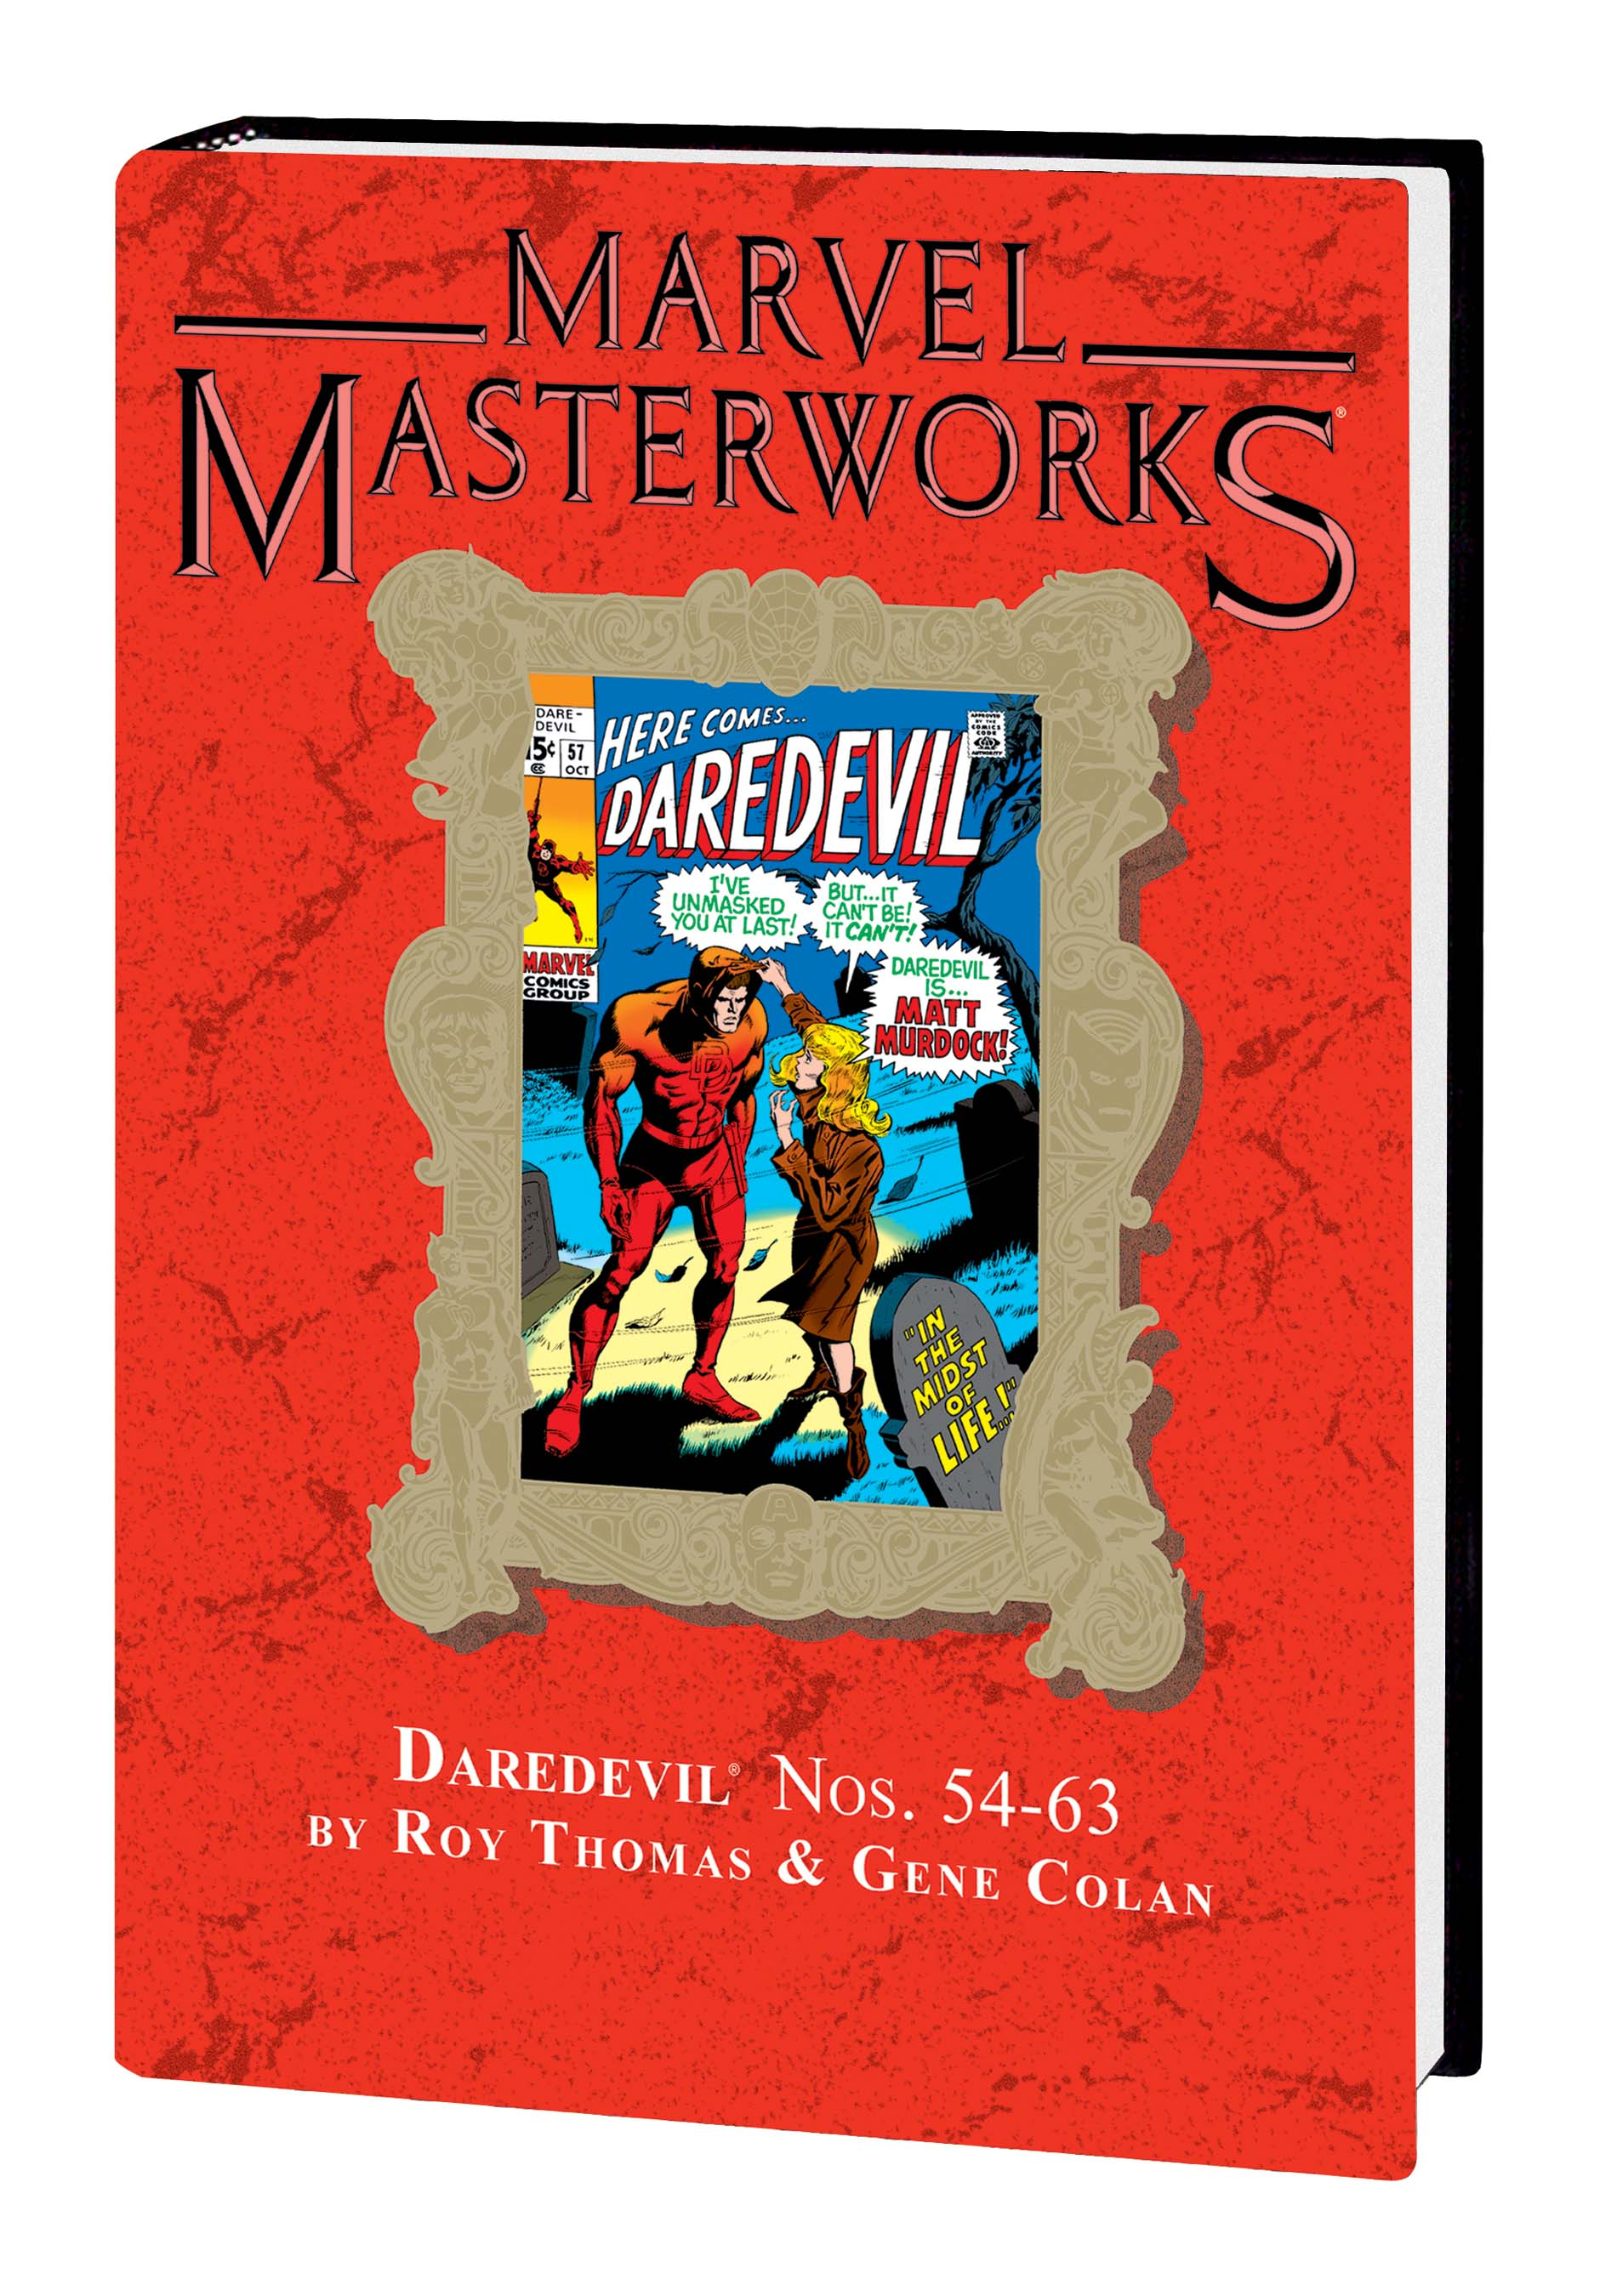 MARVEL MASTERWORKS: DAREDEVIL VOL. 6 HC (DM Variant) (Hardcover)